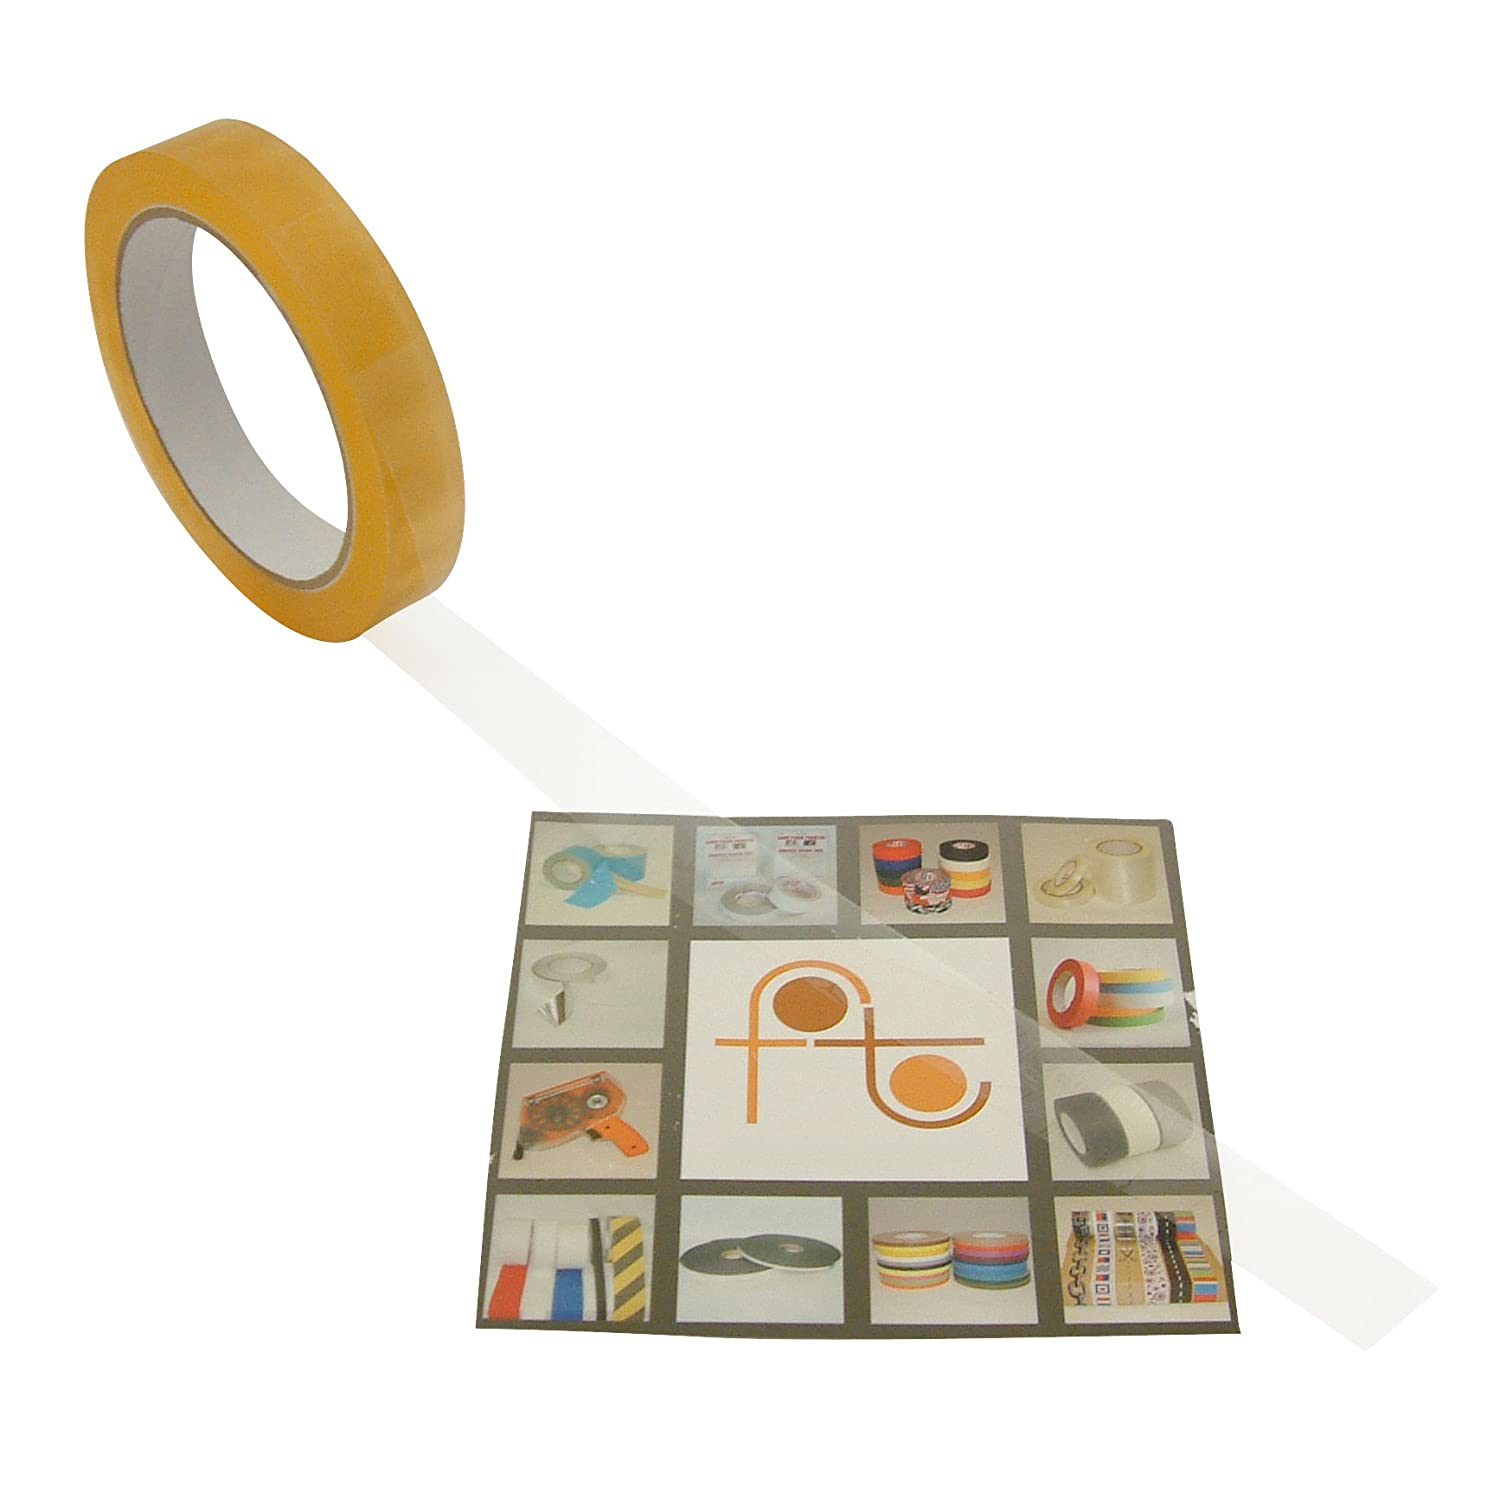 "J.V. Converting CELLO-1/CLR07572 JVCC CELLO-1 Cellophane Sealing Tape (Biodegradable): 3/4"" x 72 yd., Clear"